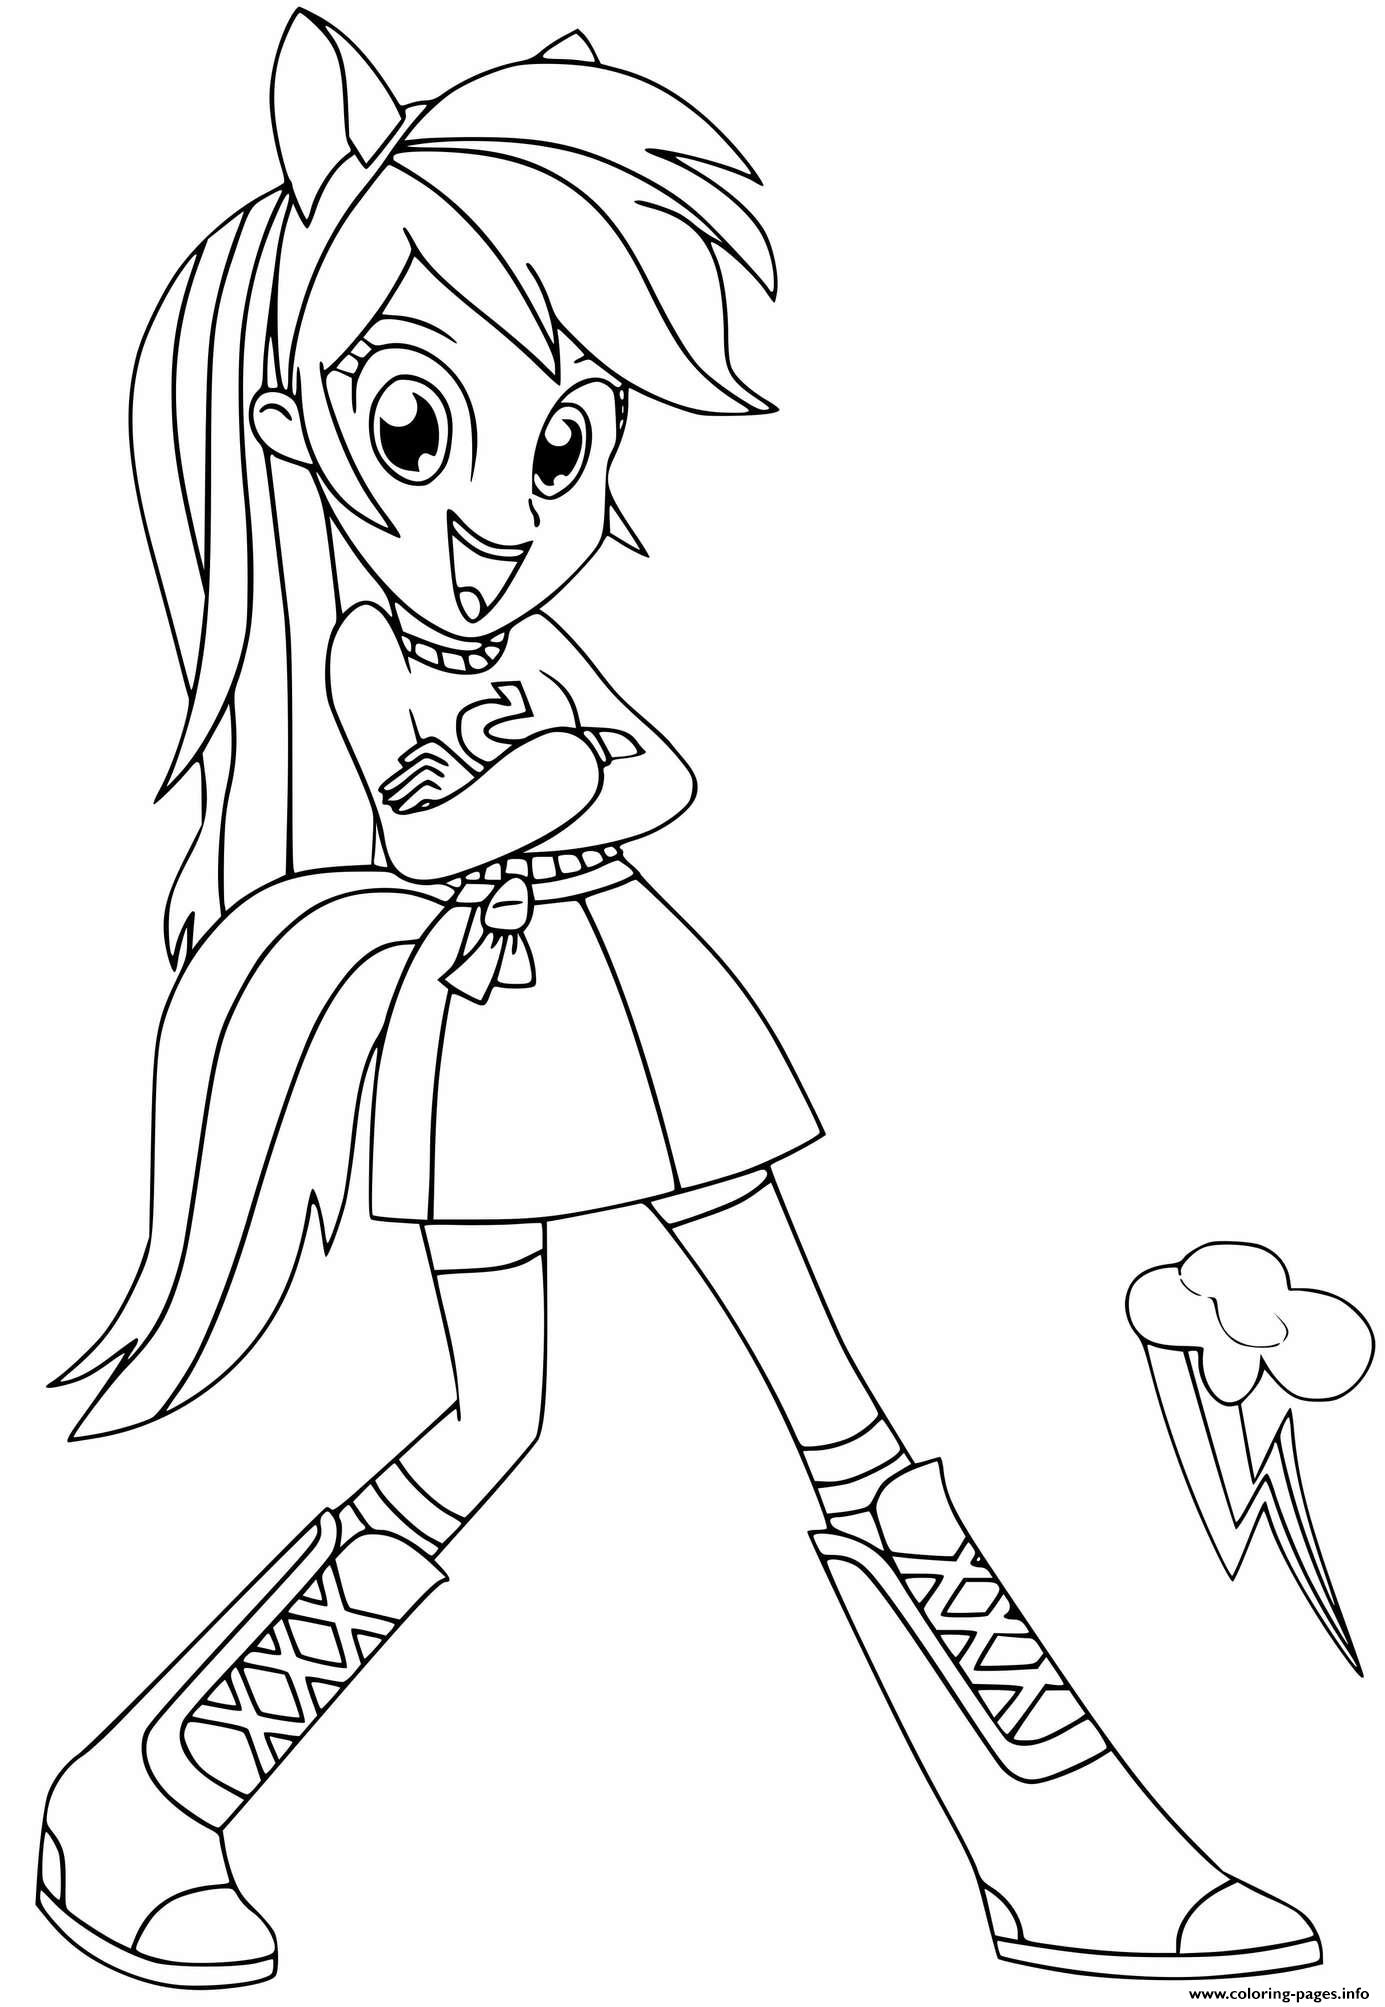 Coloriage My Little Pony Rainbow Dash : coloriage, little, rainbow, Rainbow, Little, Equestria, Girls, Coloring, Pages, Printable